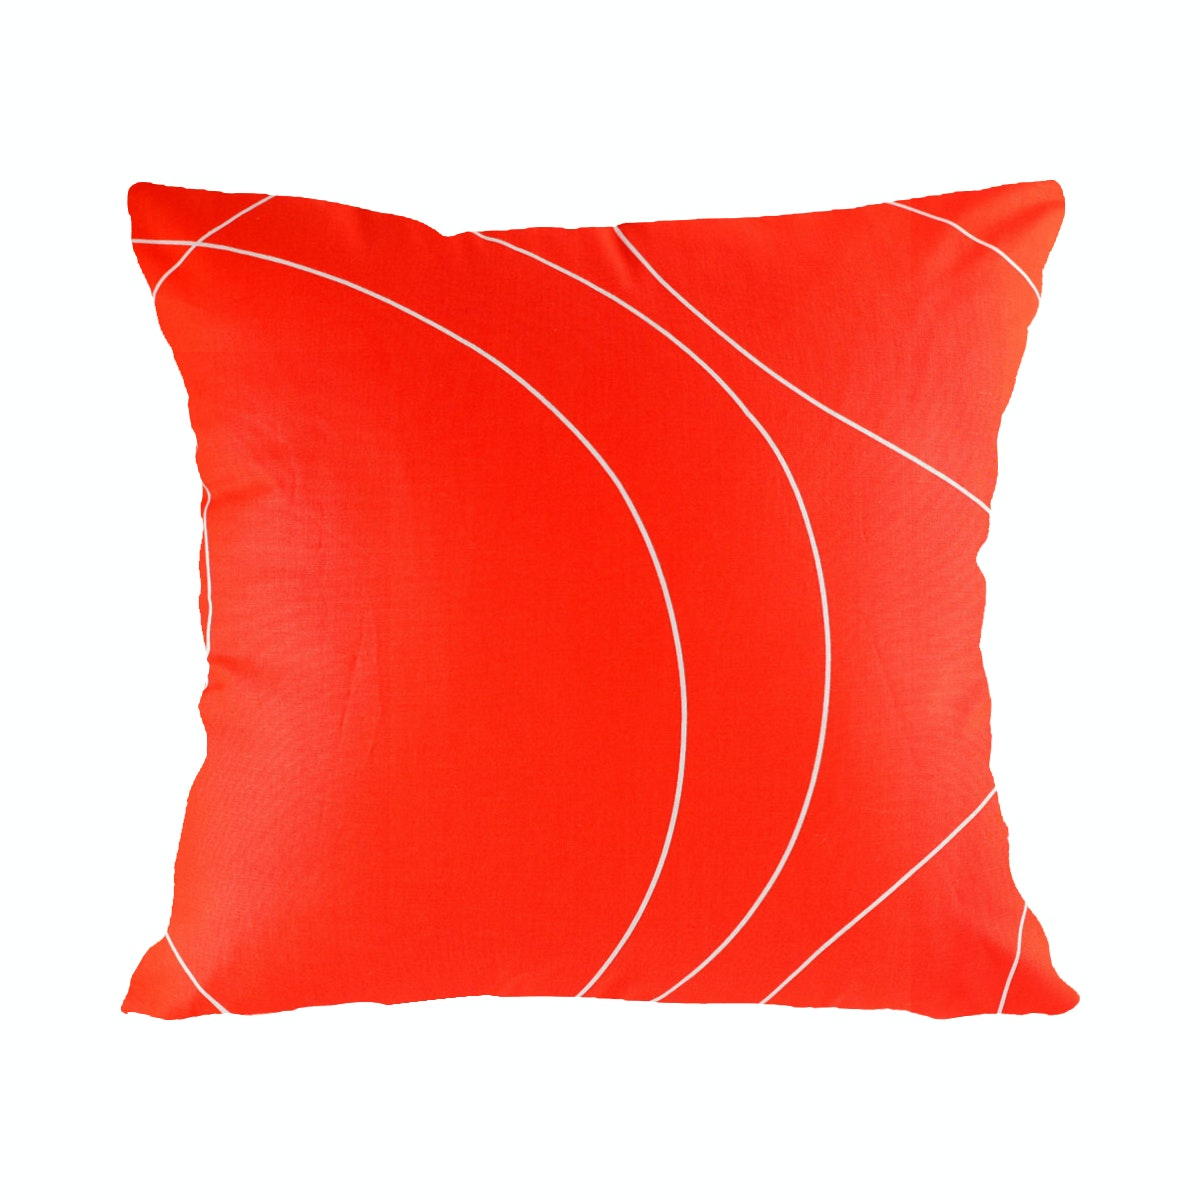 Eolins 2pcs Sarung Bantal Sofa Strings JSPS080 40x40cm Orange